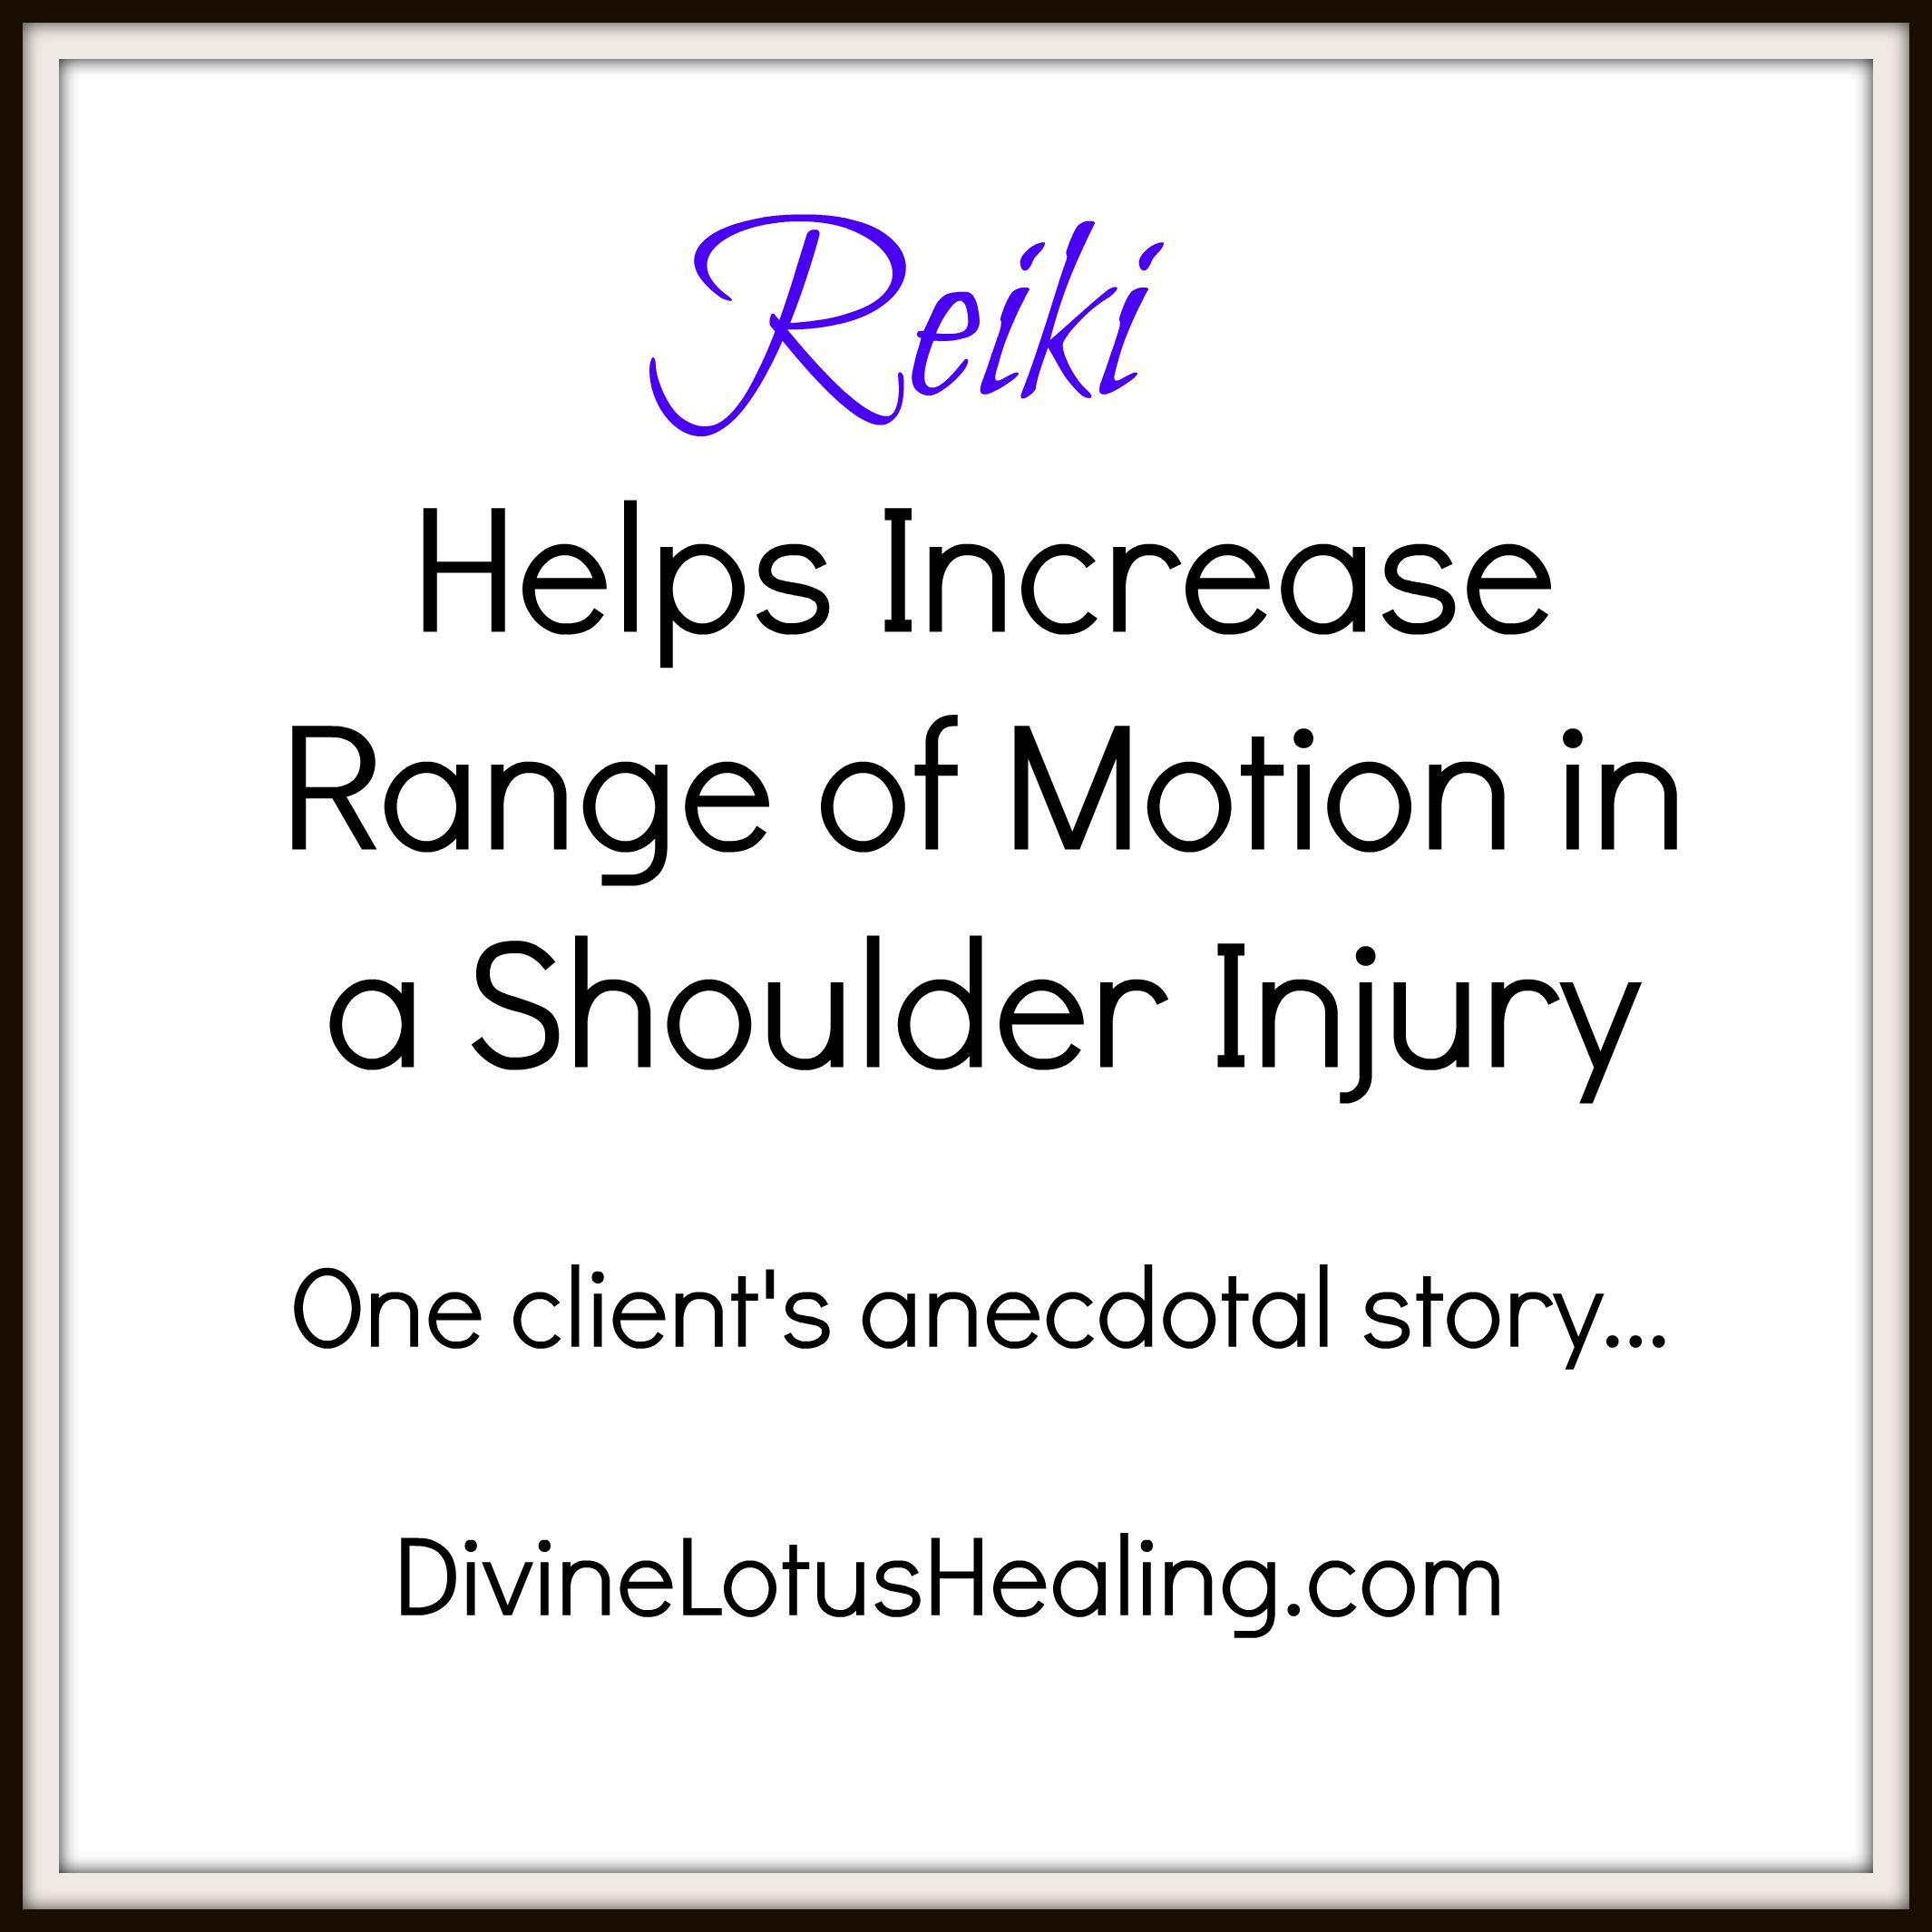 Divine Lotus Healing | Reiki Helps Increase Range of Motion in a Shoulder Injury